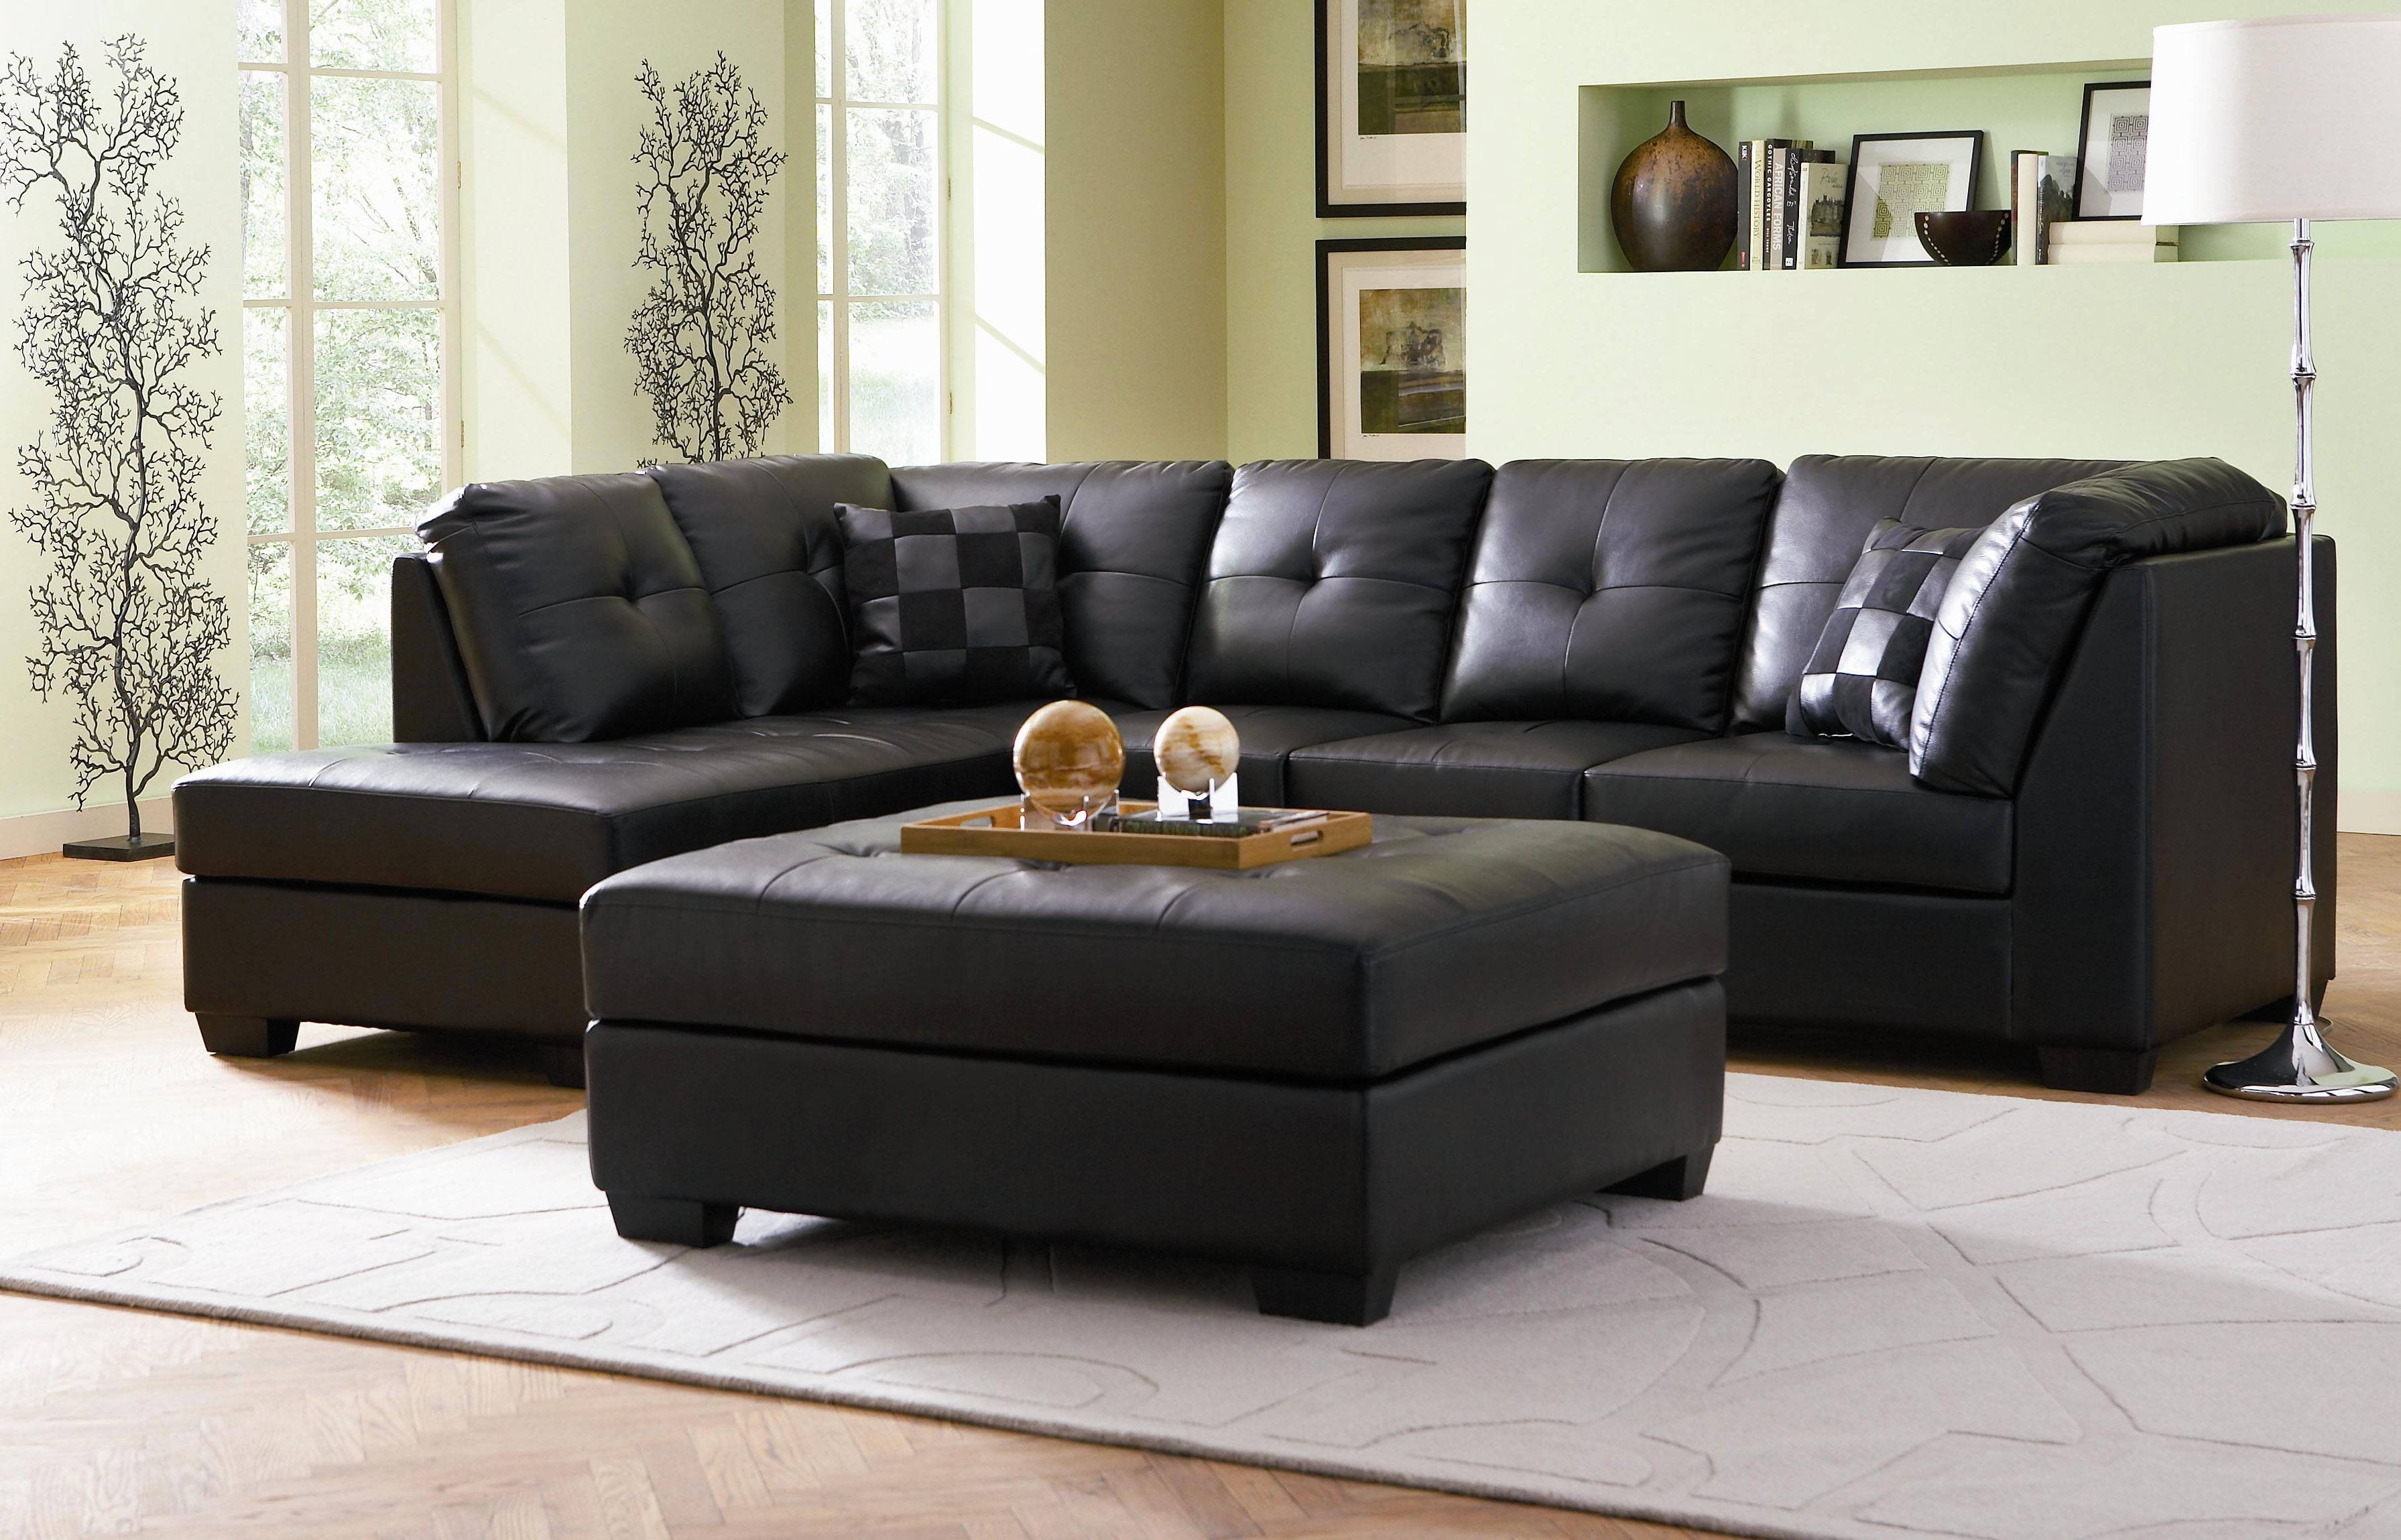 Furniture & Sofa: Perfect Small Spaces Configurable Sectional Sofa Inside Apartment Sofa Sectional (Image 16 of 30)